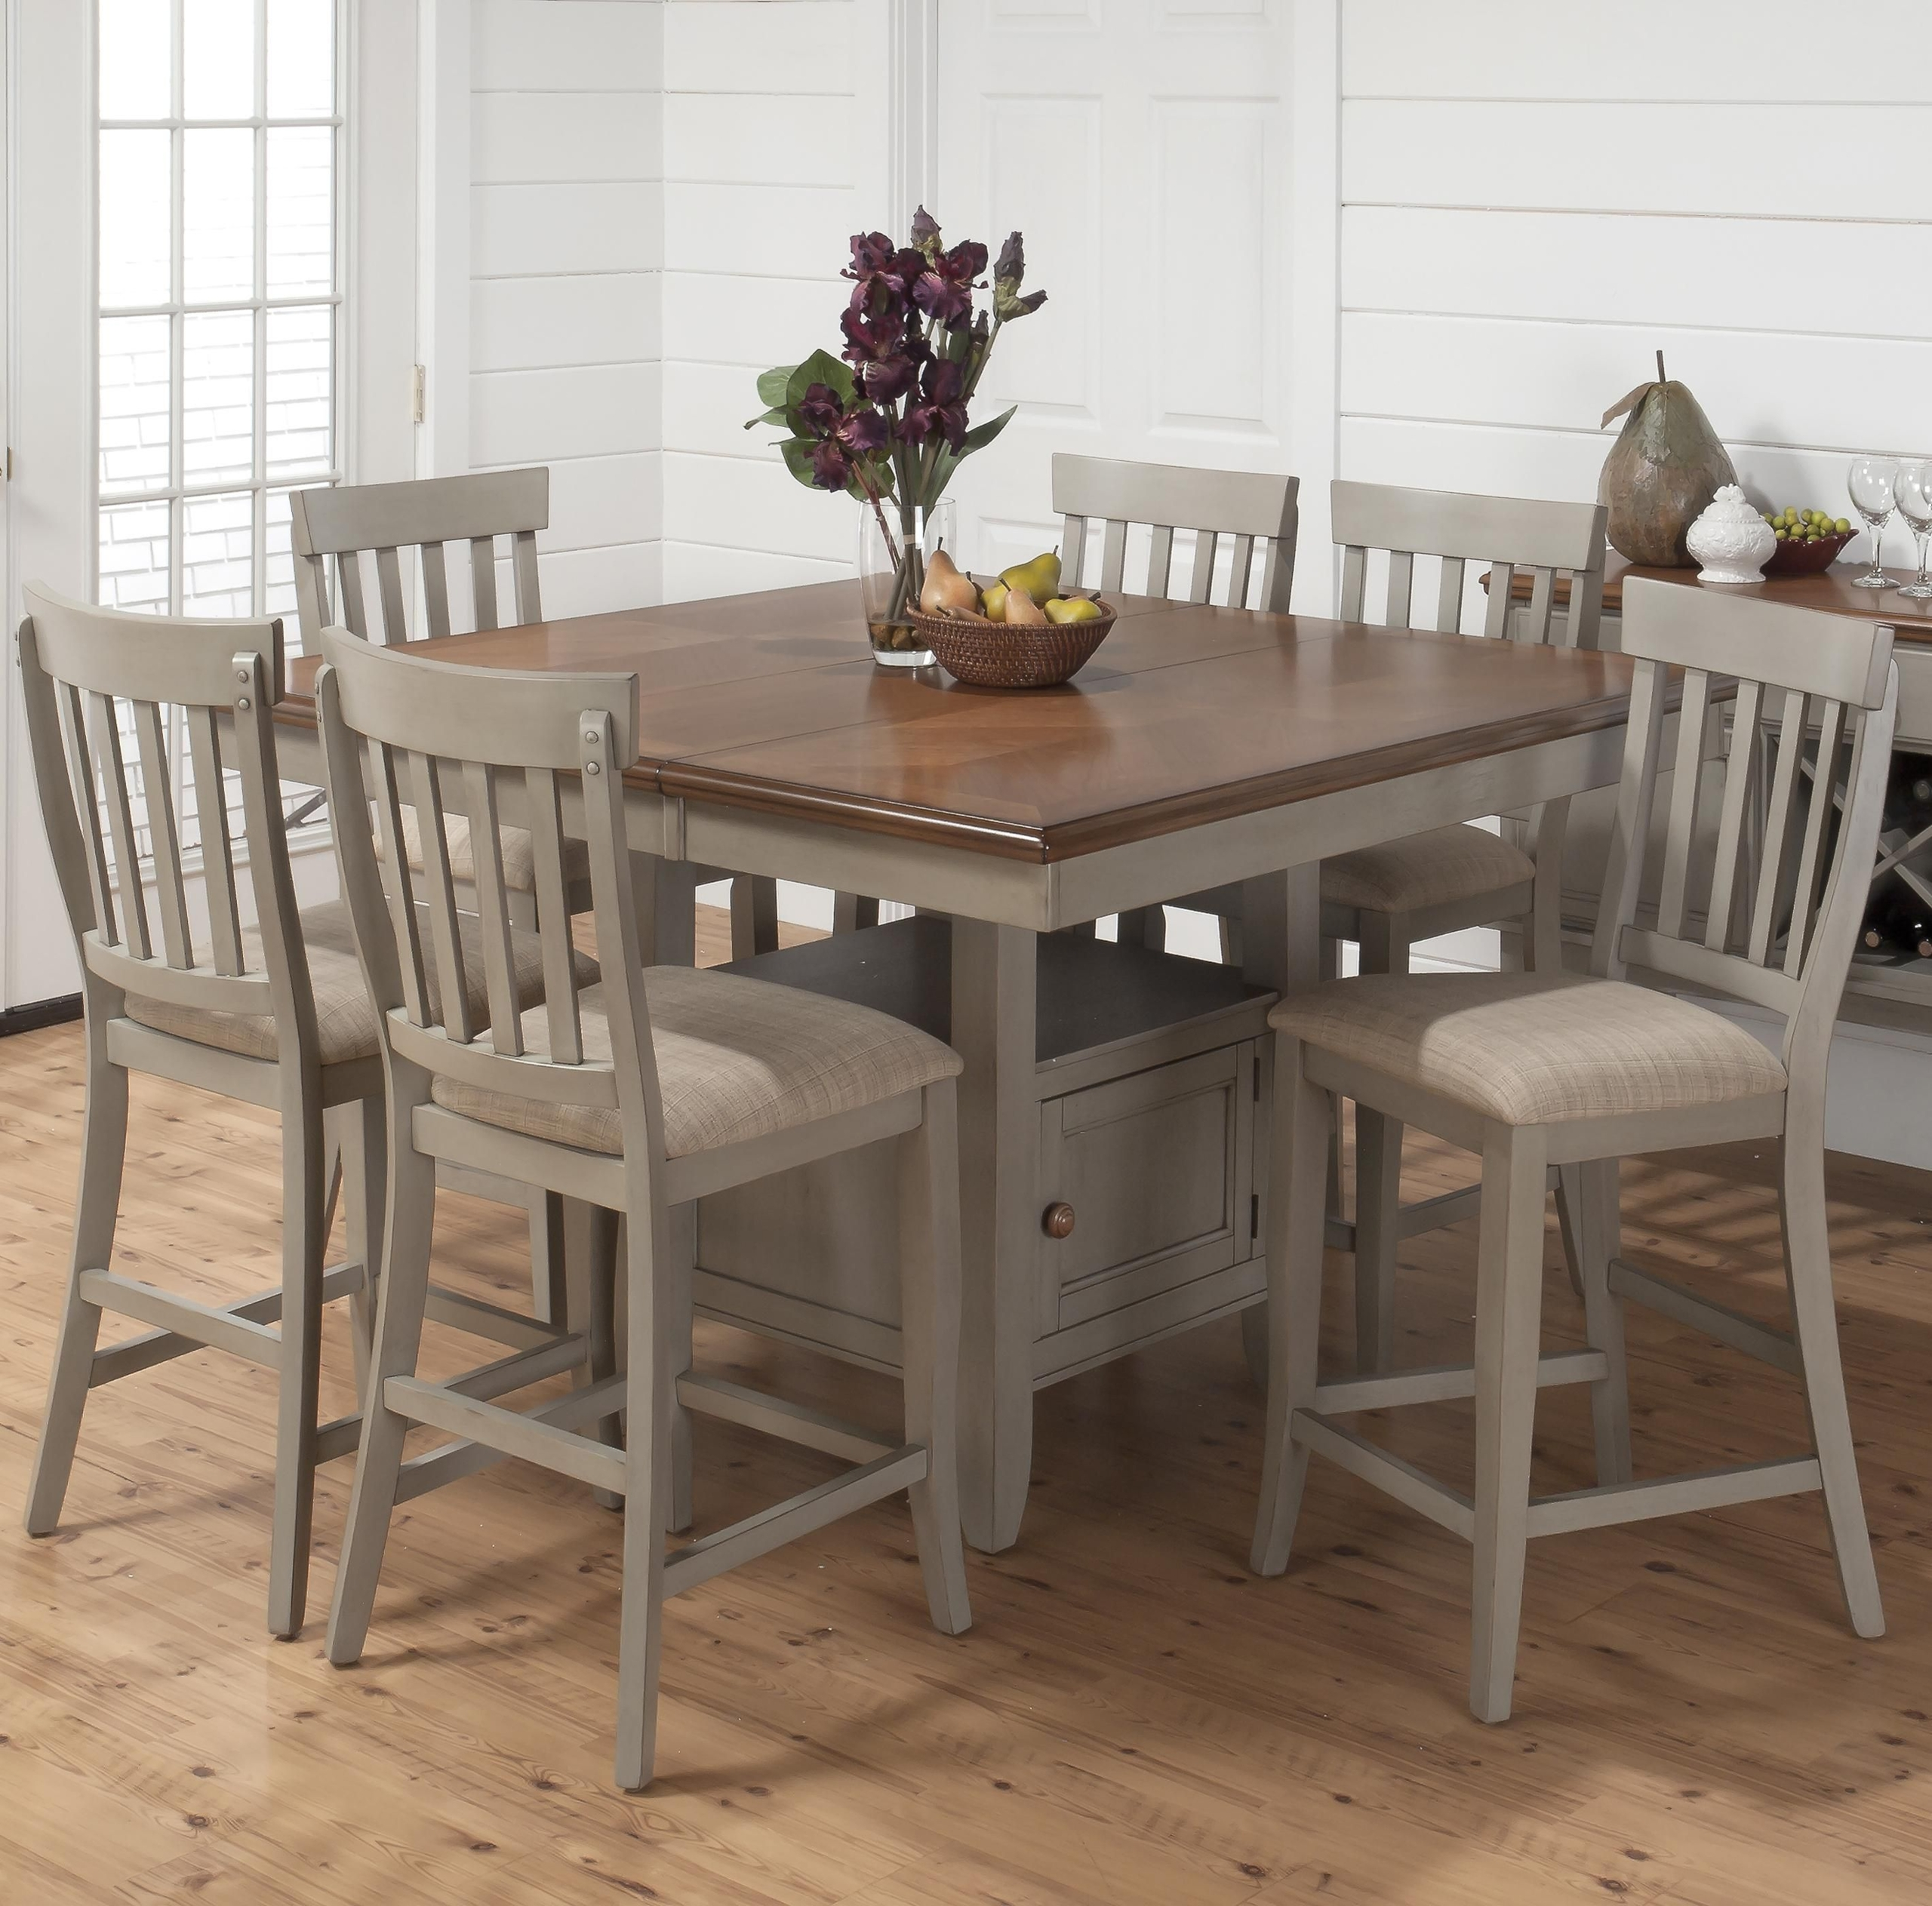 Good Light Wood Counter Height Dining Sets